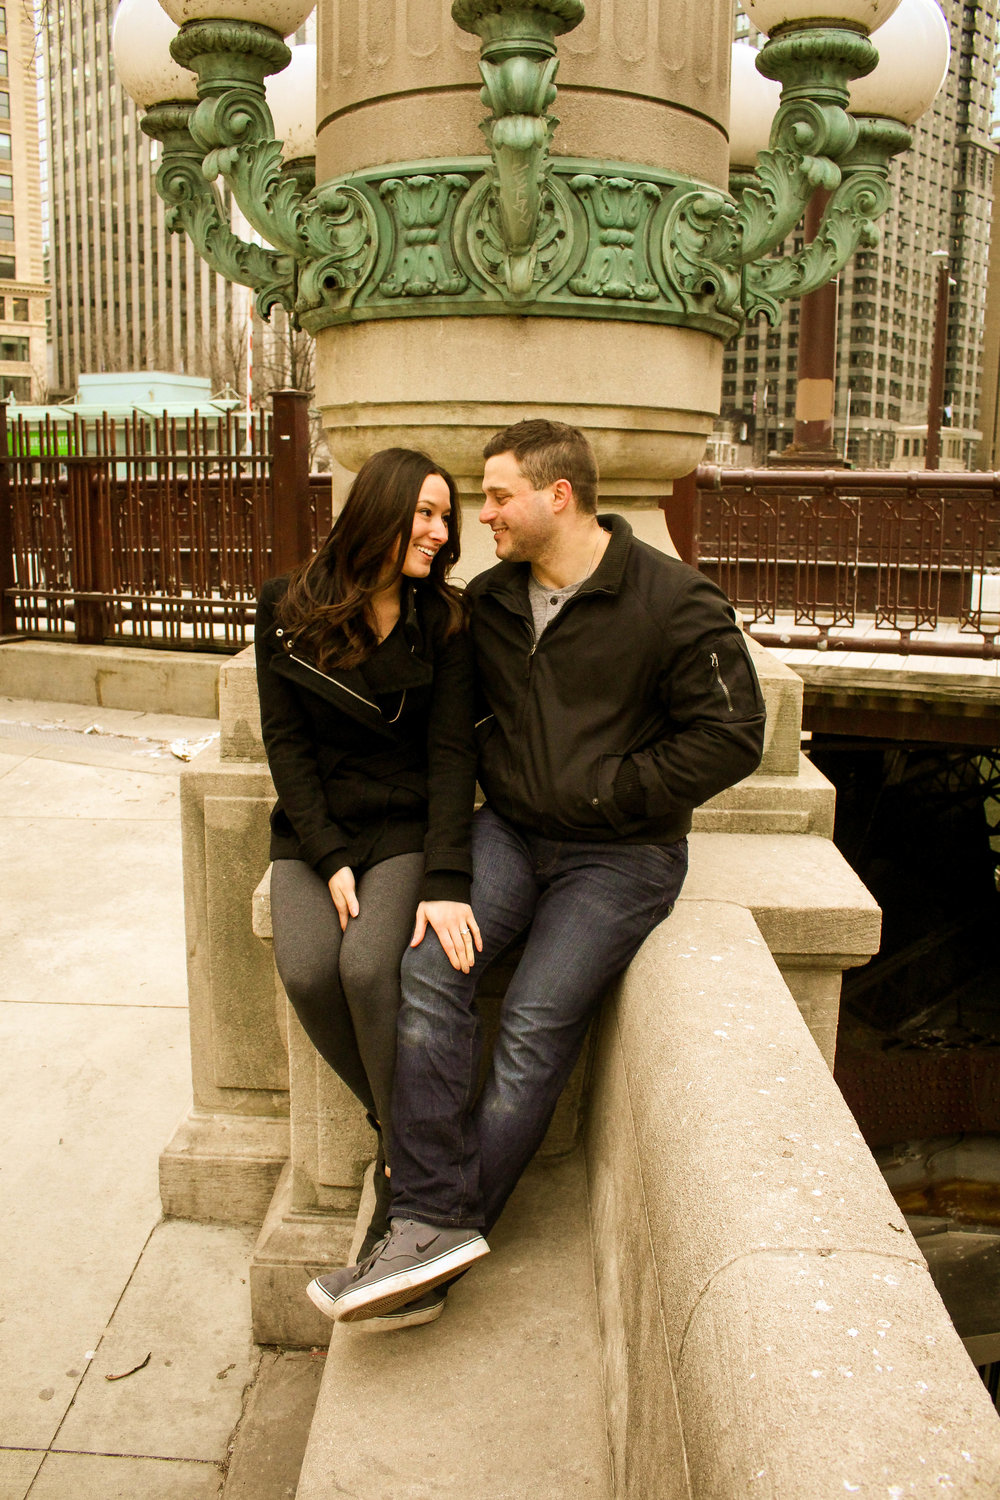 """Wedding Bells! - One of the most exciting things about getting engaged is the engagement photo shoot! Engagement photo shoots will provide you with images for your """"save the date"""" Christmas cards and wedding websites! I love photographing couples in love! <3"""